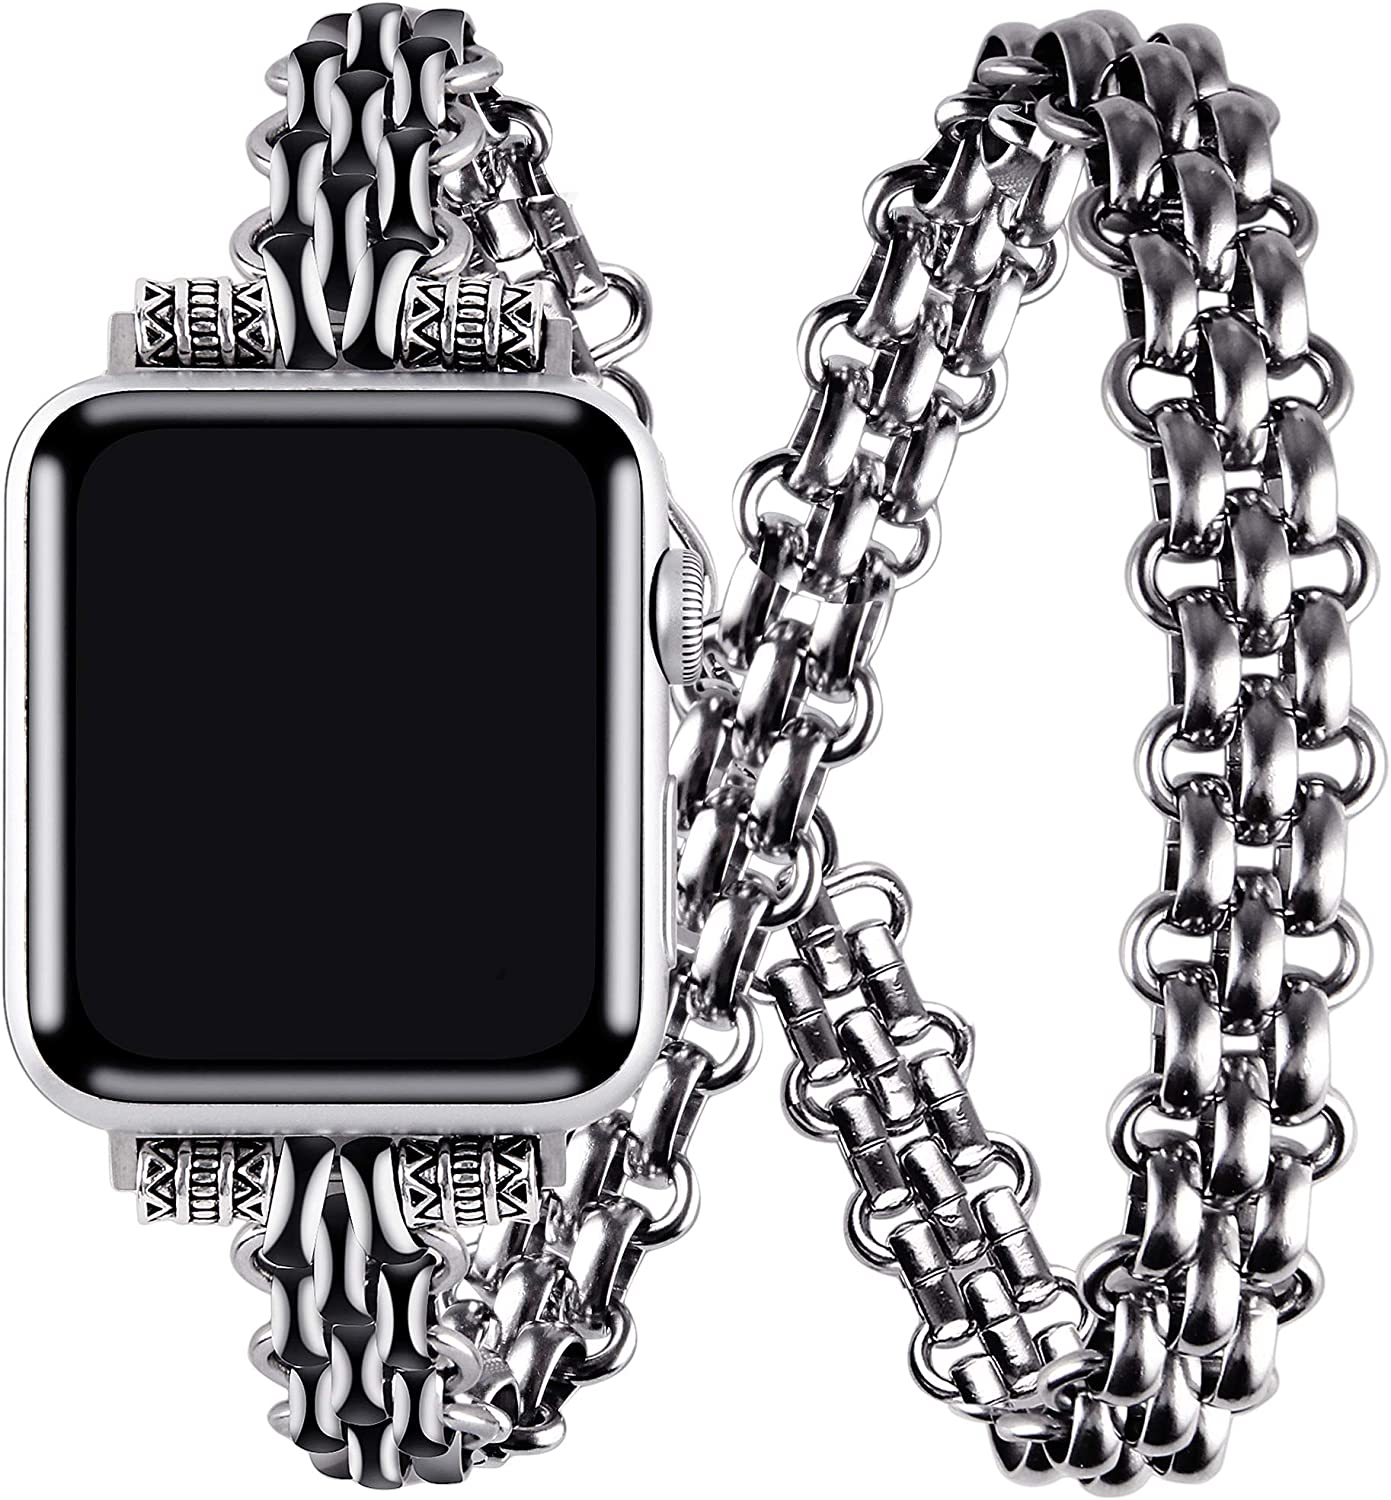 VIQIV Double Wrap Around Bracelets Compatible with Apple Watch 38mm 40mm 42mm 44mm iwatch SE Series 6 5 4 3 2 1 for Women Mens, Stainless Steel Jewelry Dressy Metallic Charm Wristband Strap